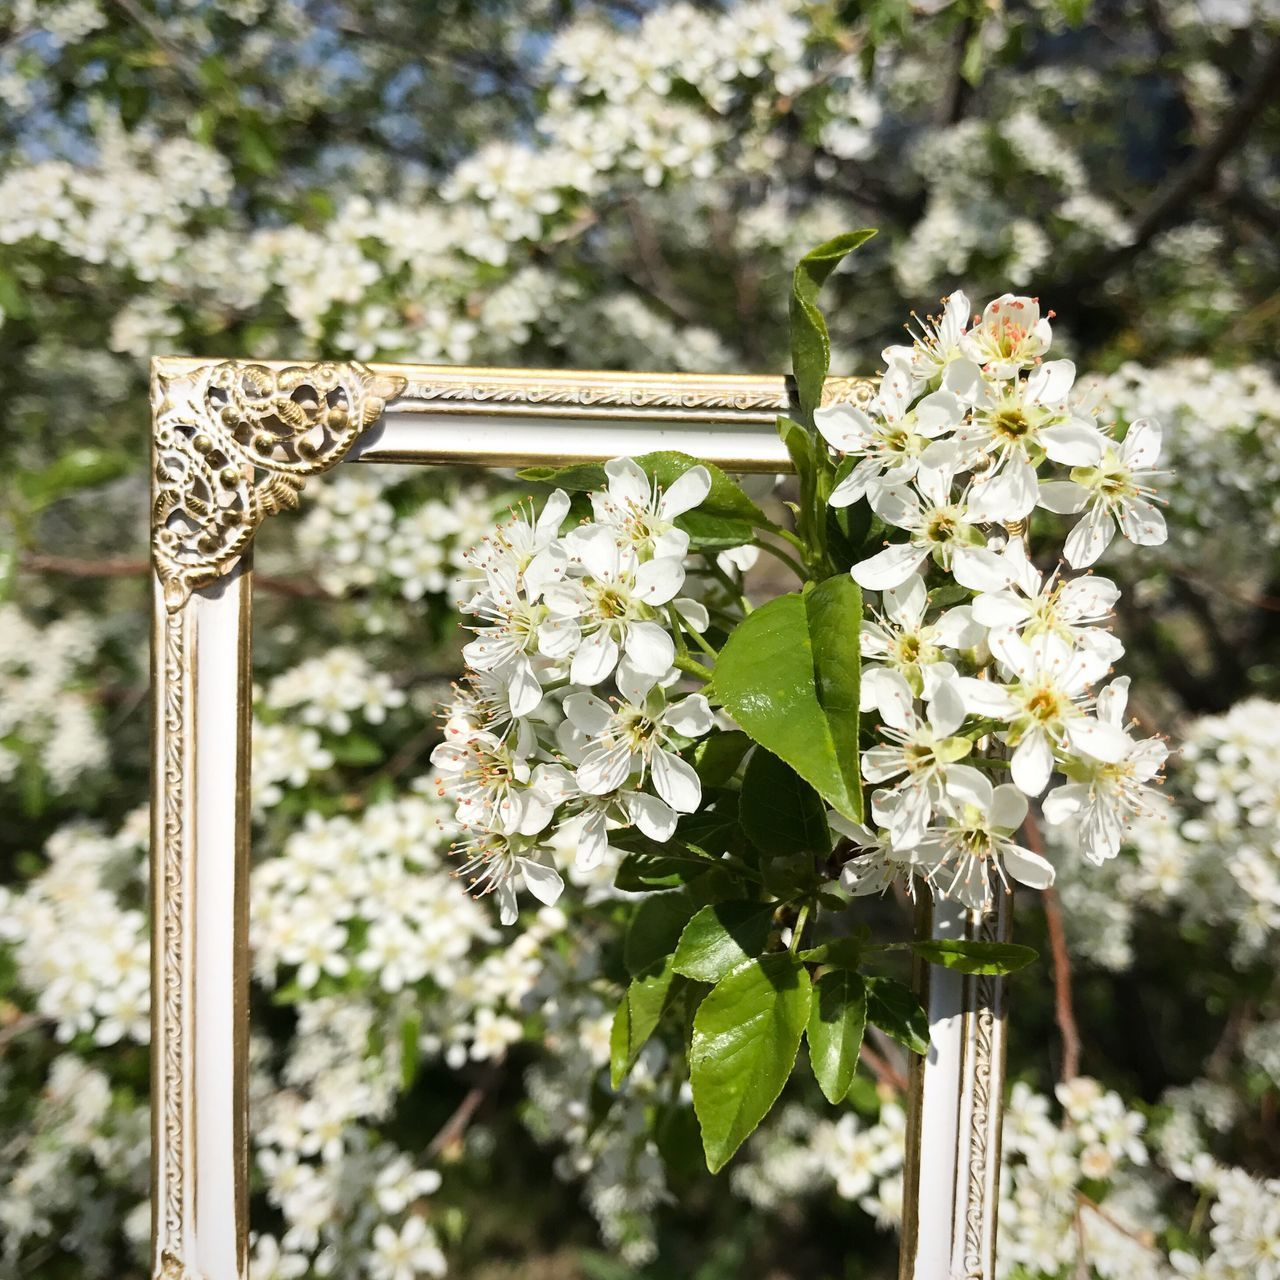 Framed Prunus padus Flower Growth Nature Focus On Foreground Close-up Outdoors Tree Fragility Beauty In Nature Freshness Flower Head Bird Cherry Tree Sunny Day Summer White Flower Blooming Springtime No People Day Plant Branch Sun Frame Vintage Frame Flowers